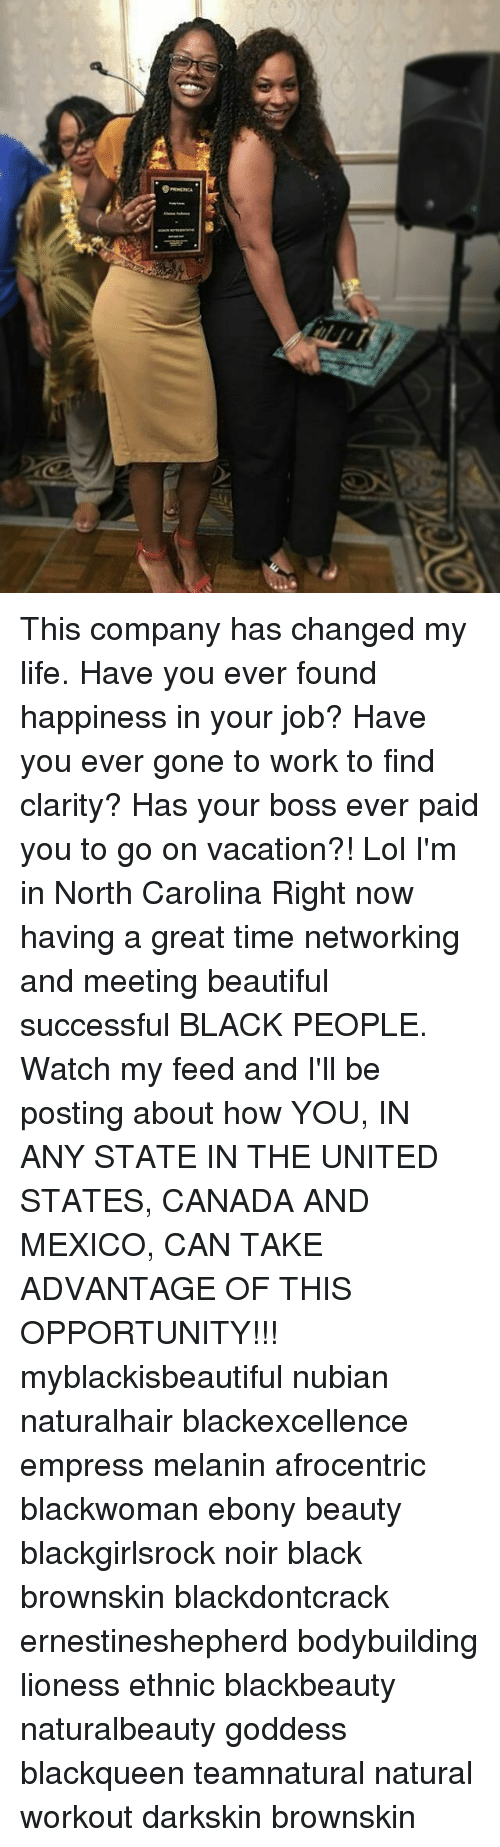 Darkskins: This company has changed my life. Have you ever found happiness in your job? Have you ever gone to work to find clarity? Has your boss ever paid you to go on vacation?! Lol I'm in North Carolina Right now having a great time networking and meeting beautiful successful BLACK PEOPLE. Watch my feed and I'll be posting about how YOU, IN ANY STATE IN THE UNITED STATES, CANADA AND MEXICO, CAN TAKE ADVANTAGE OF THIS OPPORTUNITY!!! myblackisbeautiful nubian naturalhair blackexcellence empress melanin afrocentric blackwoman ebony beauty blackgirlsrock noir black brownskin blackdontcrack ernestineshepherd bodybuilding lioness ethnic blackbeauty naturalbeauty goddess blackqueen teamnatural natural workout darkskin brownskin